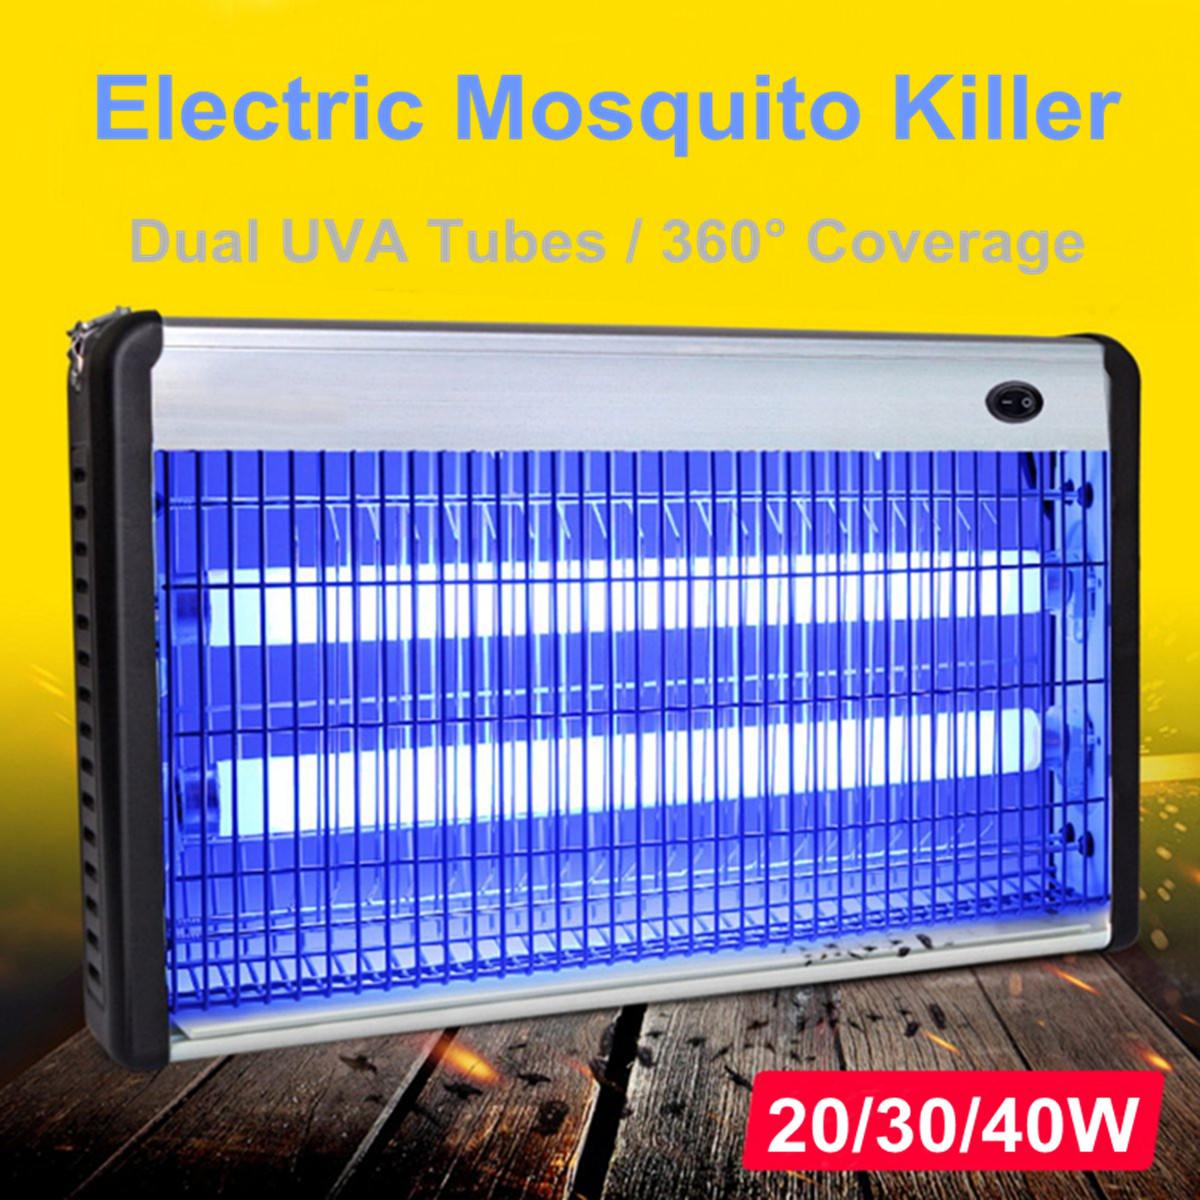 Electric Insect Killer LED UV-A Electronics Mosquito Repeller Pest Fly Bug Zapper Catcher Traps Home Pest Control Lamp 20/30/40W